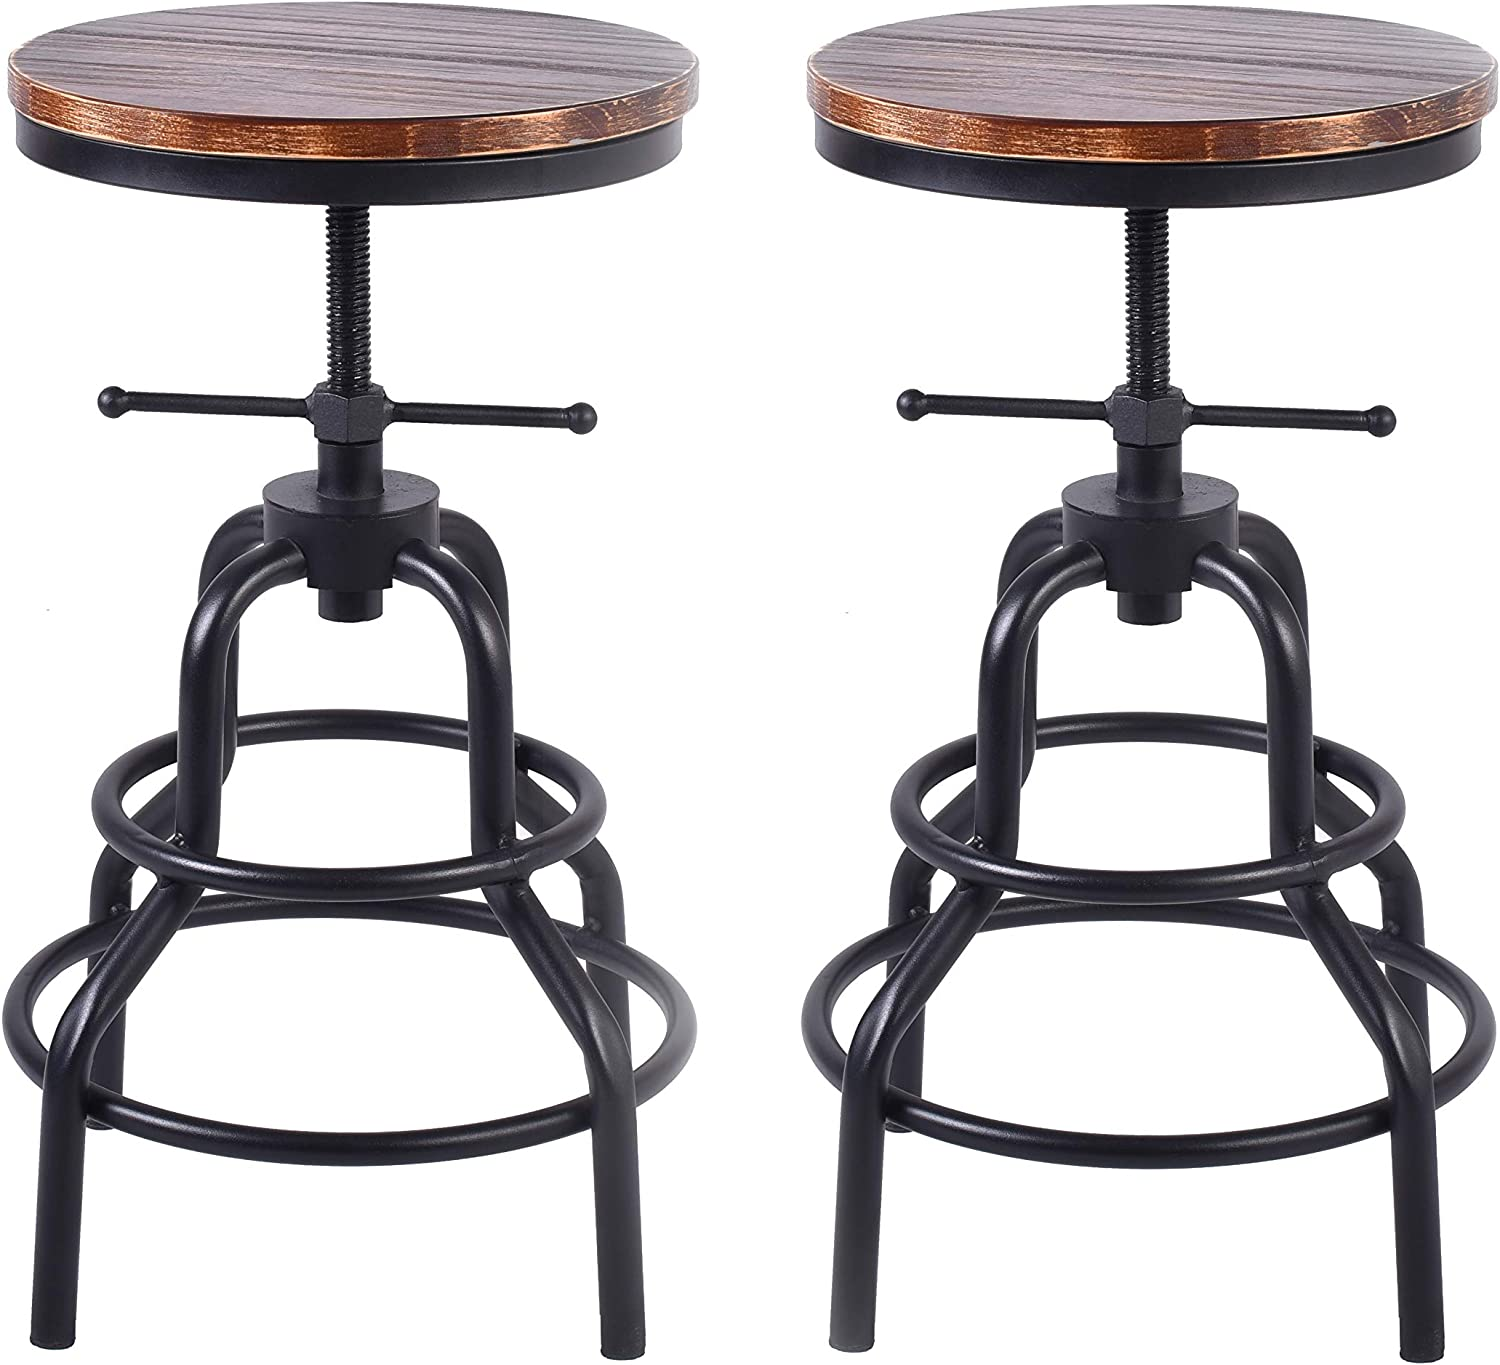 Swiveling Vintage Industrial Bar Stool,Adjustable Round Wood and Metal Pipe Stool,Cast Iron Kitchen Counter Height Bar Stool,20 Inch-27 Inch (Brown, Set of 2)